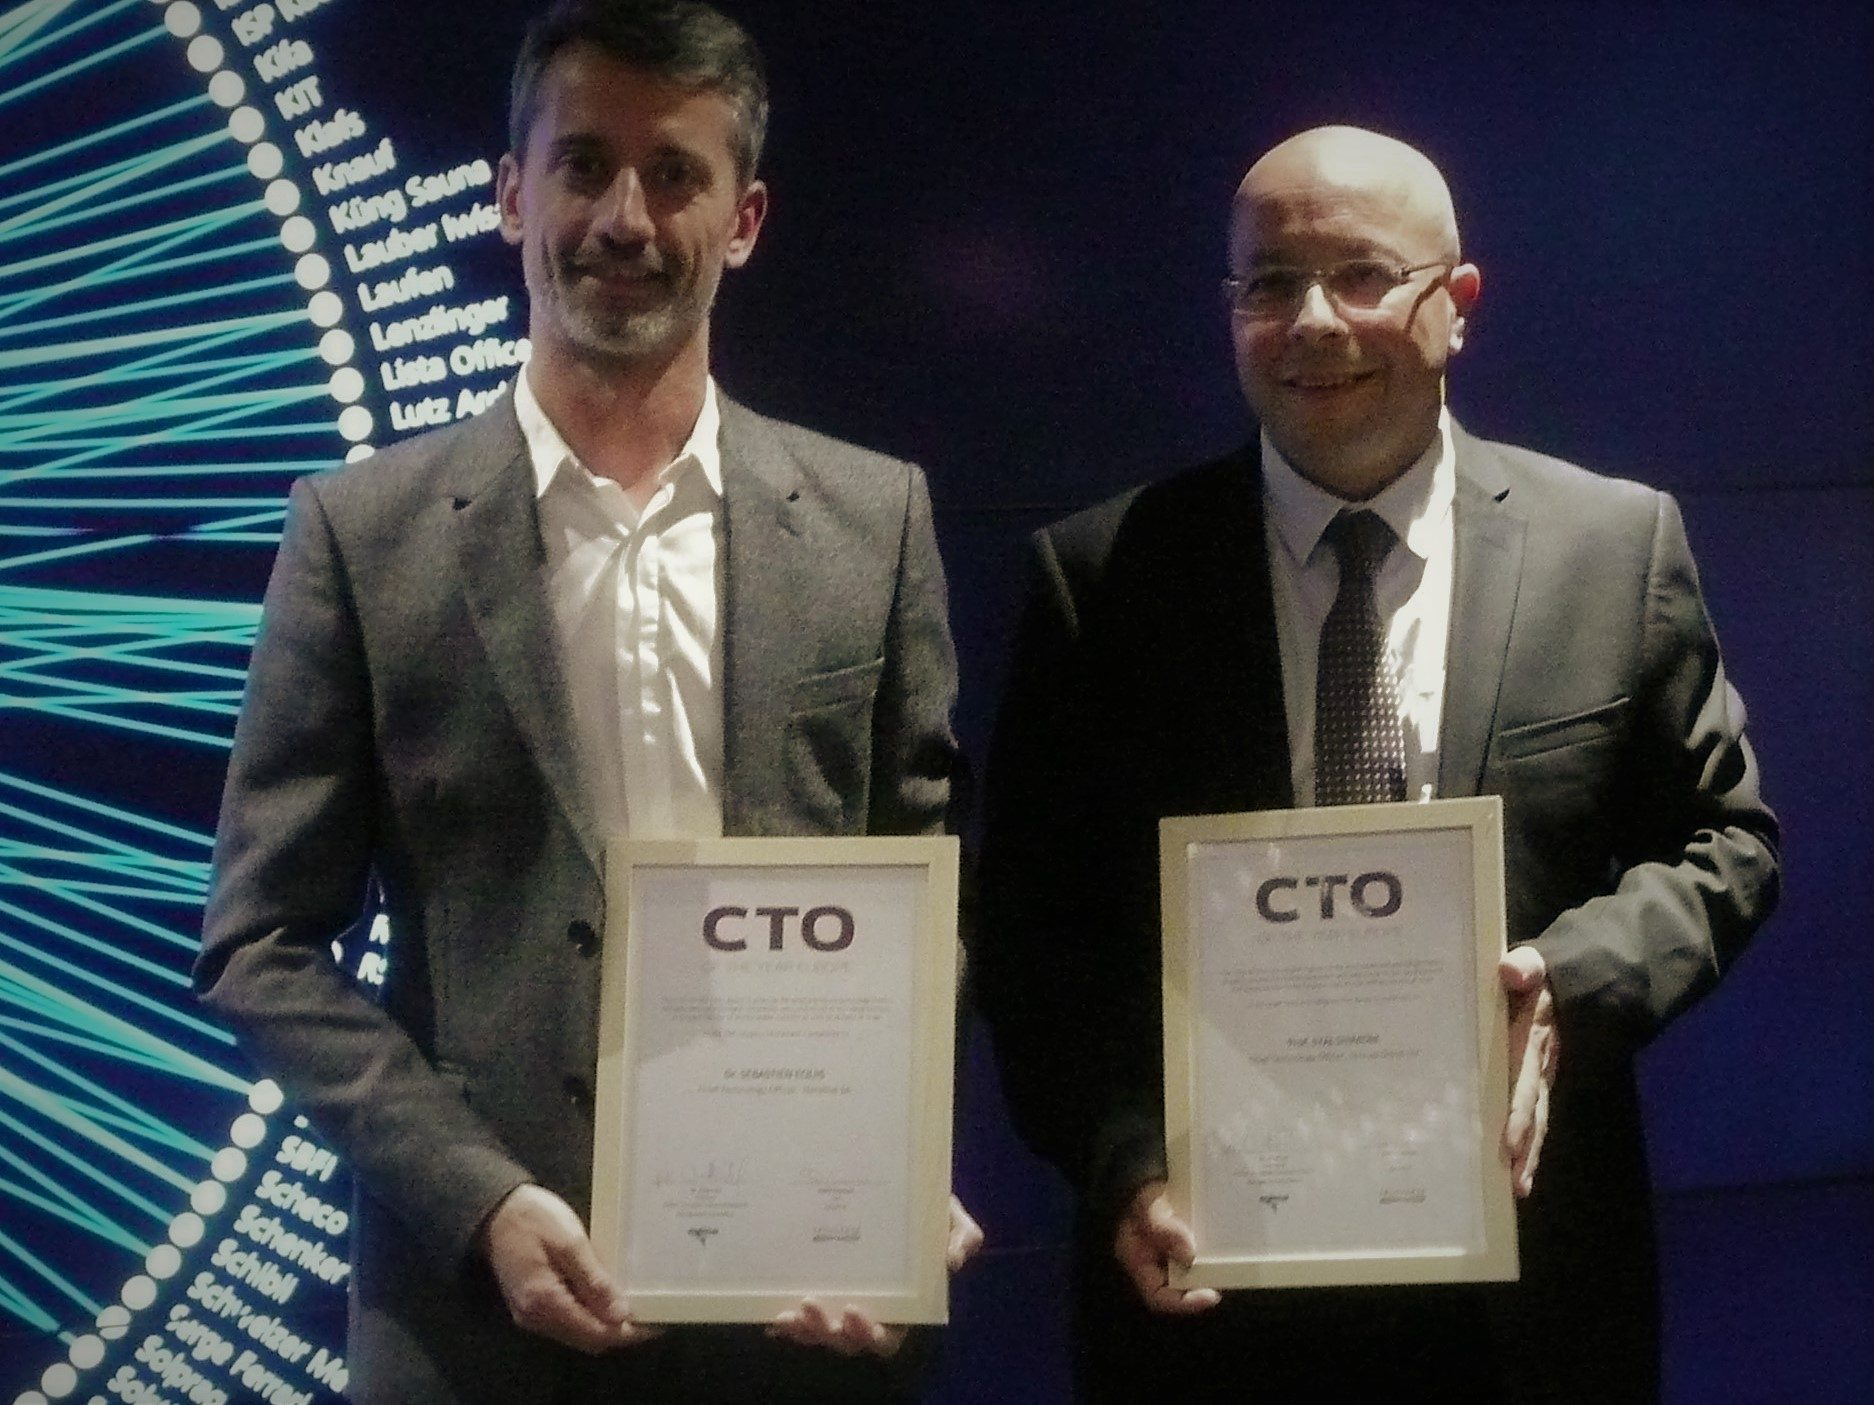 CTO of the year Sebastien Equis from Nanolive